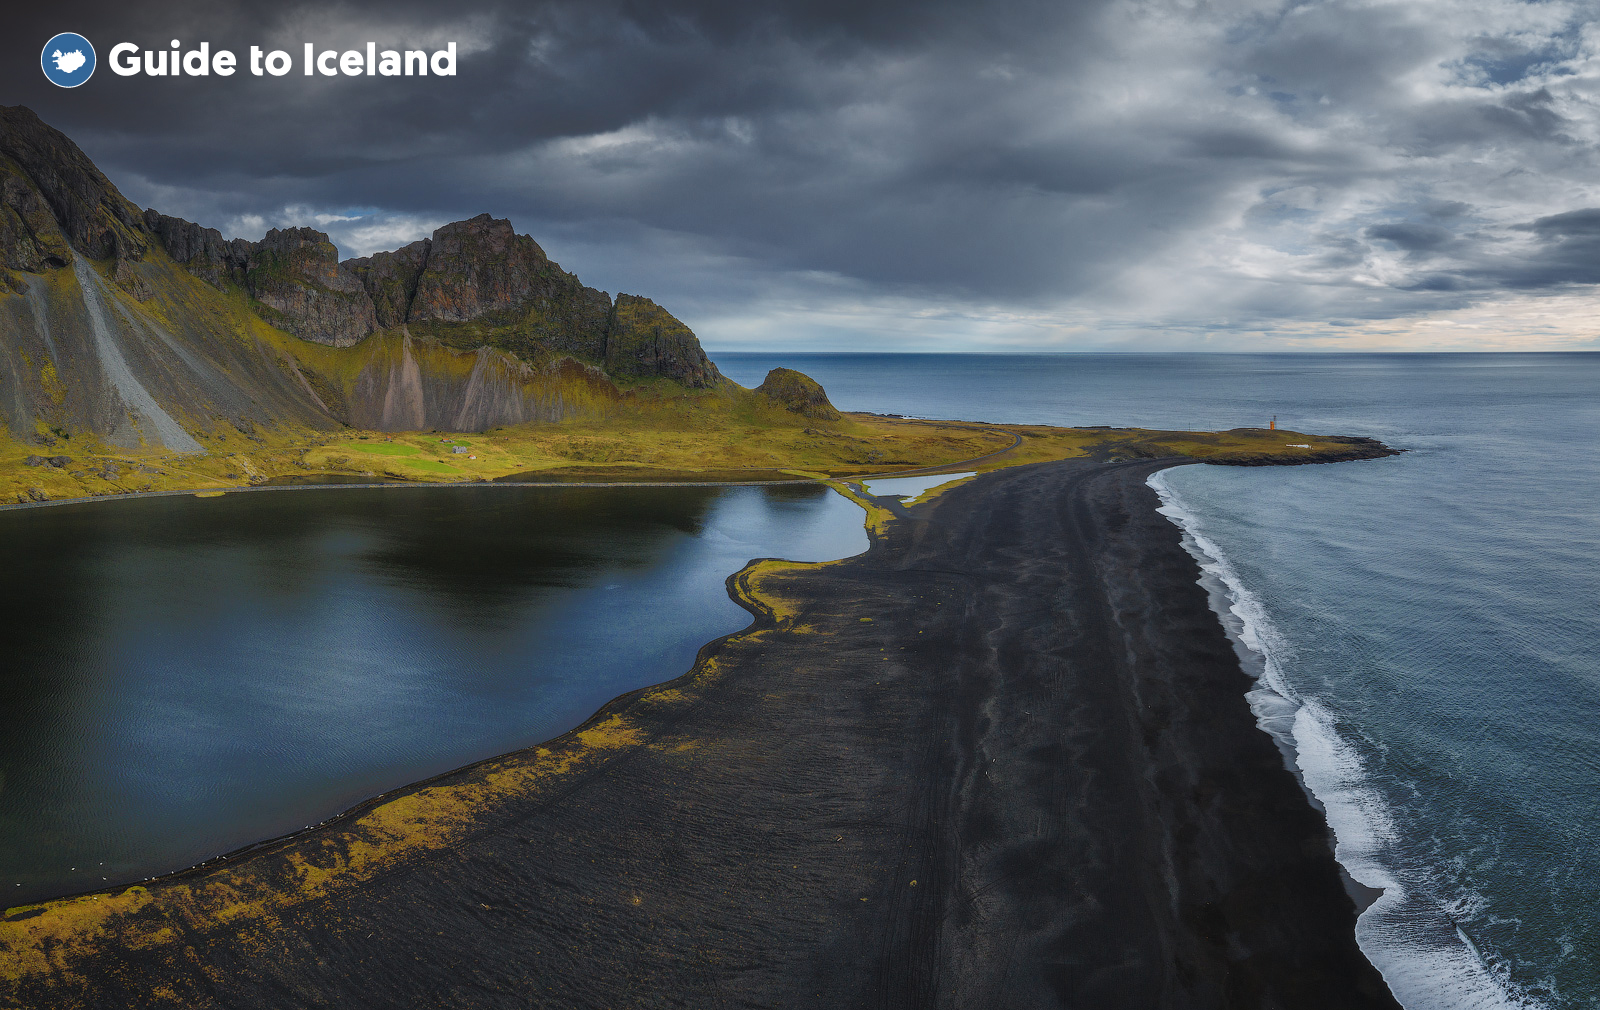 Unforgettable 11 Day Self Drive Tour of the Complete Ring Road of Iceland & the East Fjords - day 4